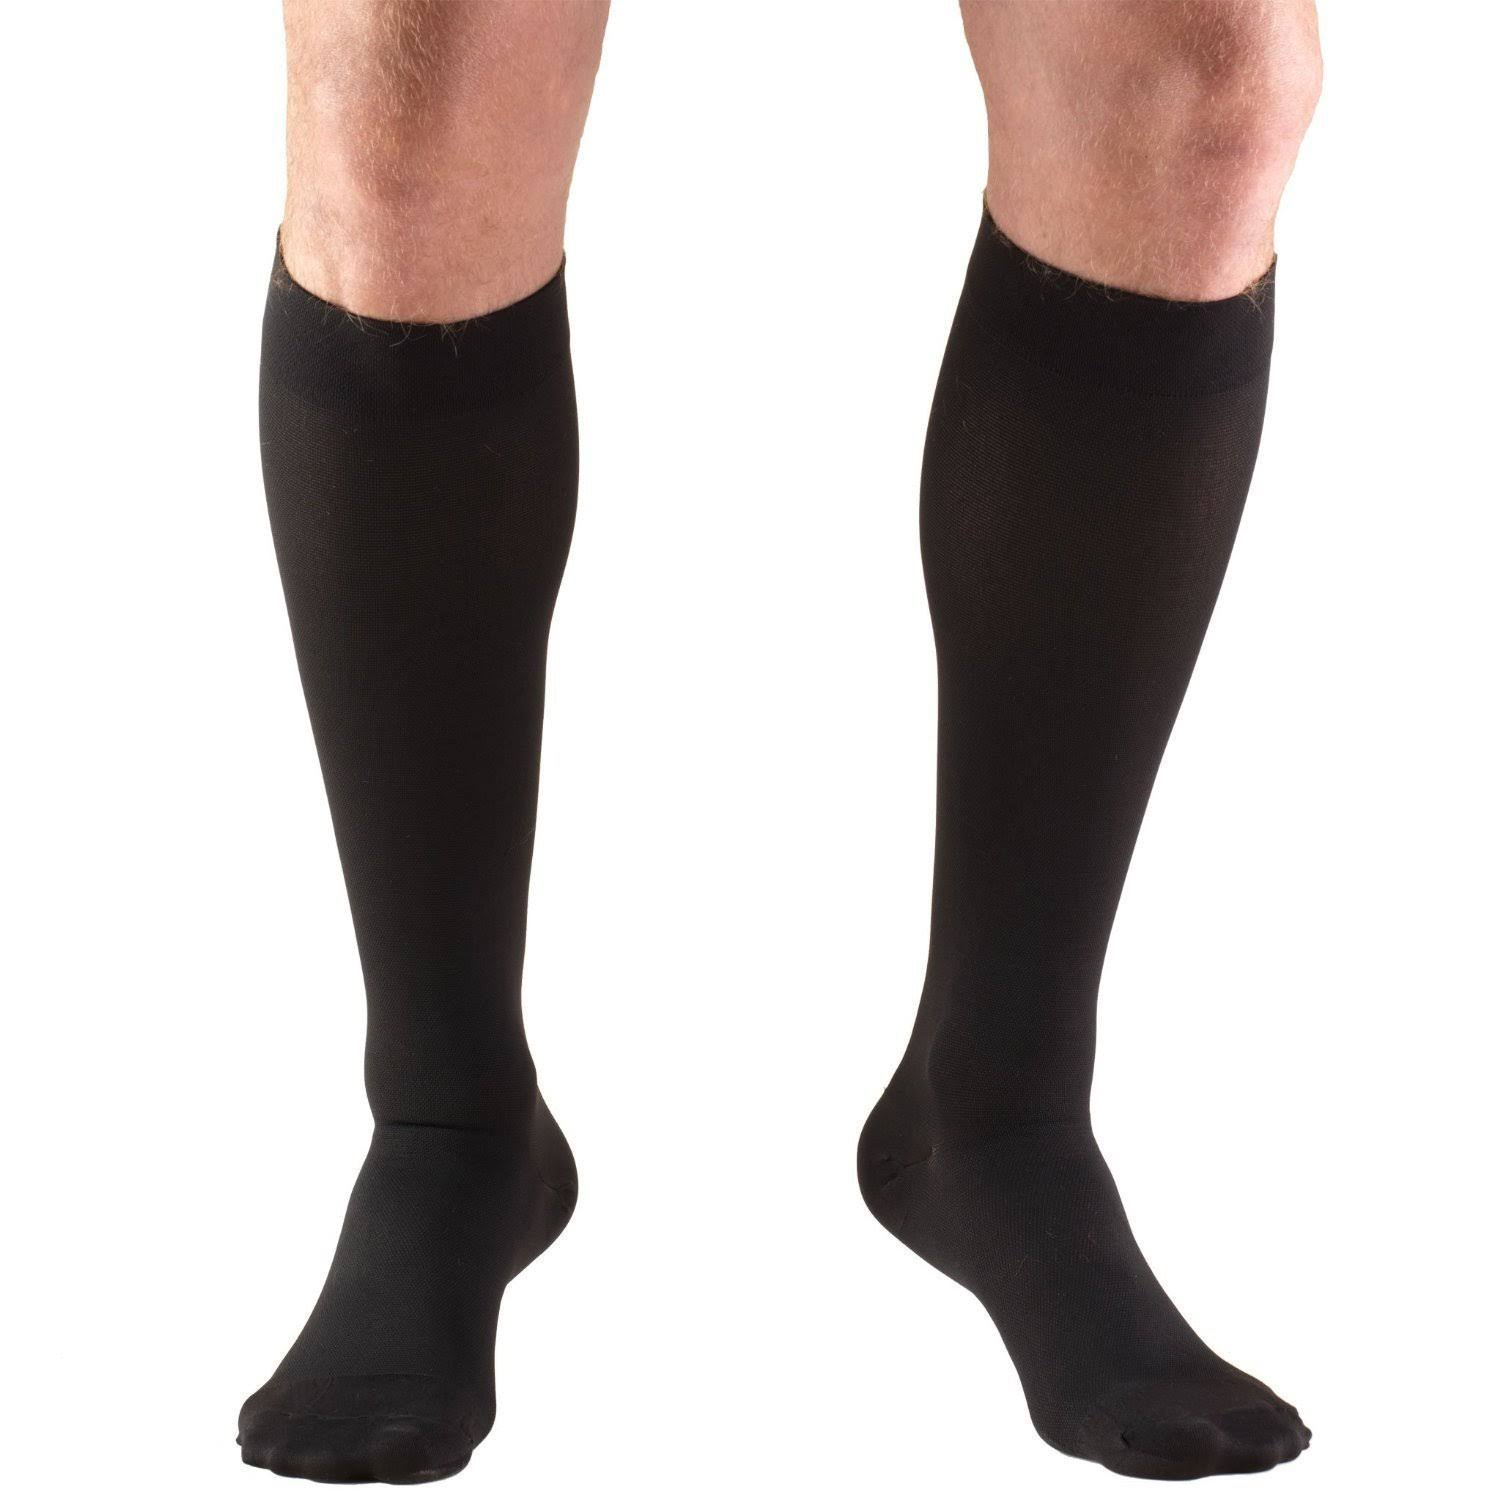 Truform 15-20 mmHg Knee High Medium / Black